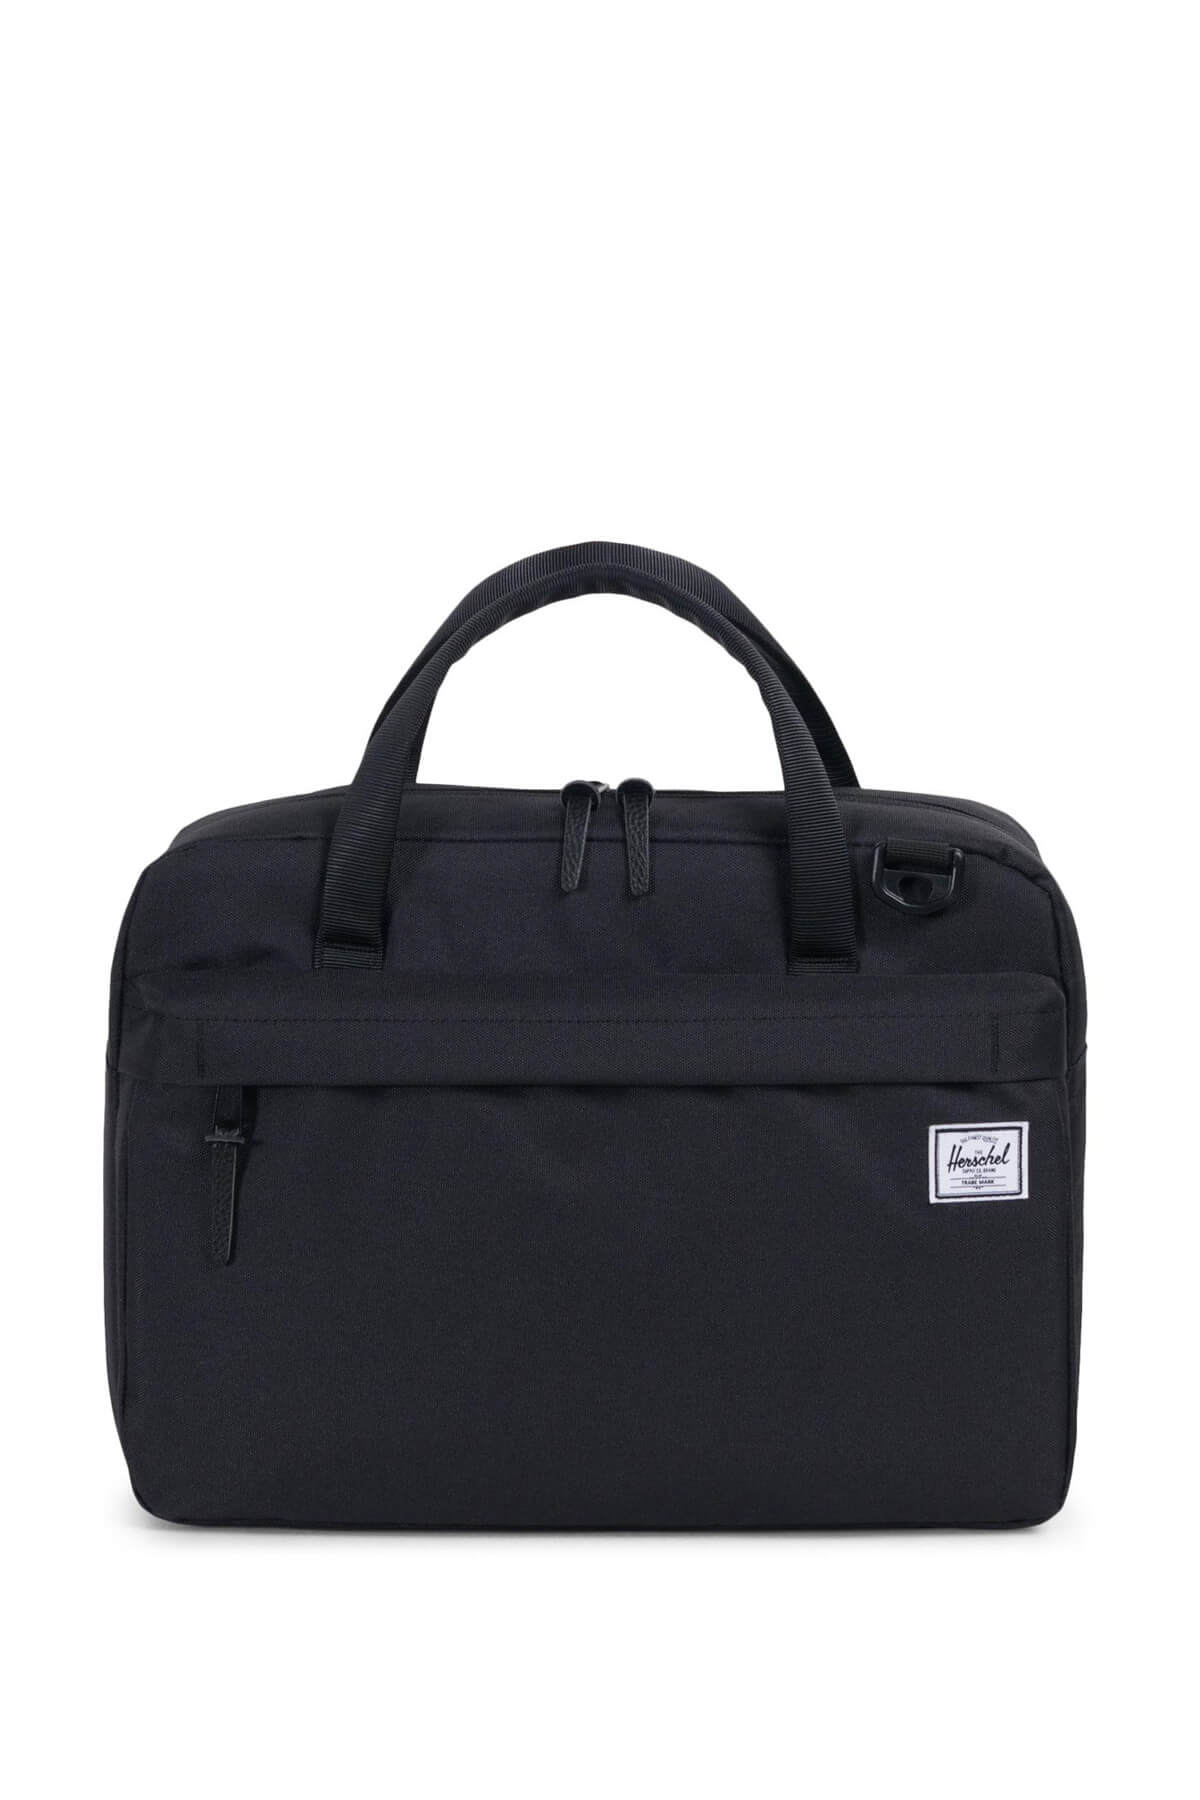 Herschel Supply Co. Unisex Laptop Çantası – Gibson 10387-00001-os